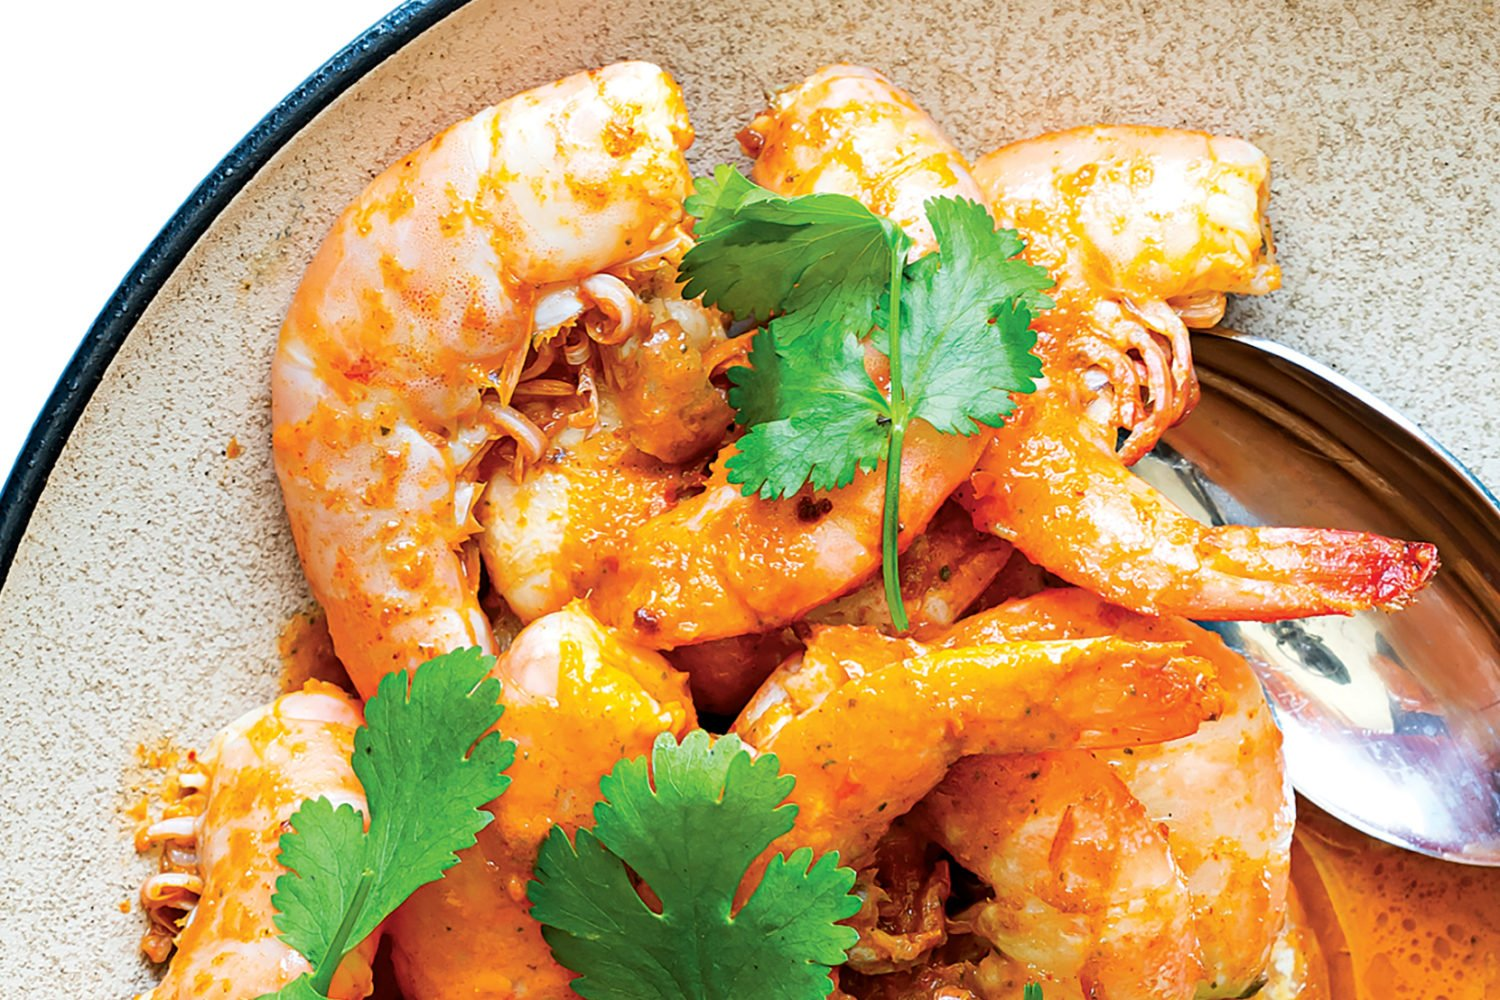 Piri-piri shrimp recipe from Erik Adjepong. Photograph by Scott Suchman.